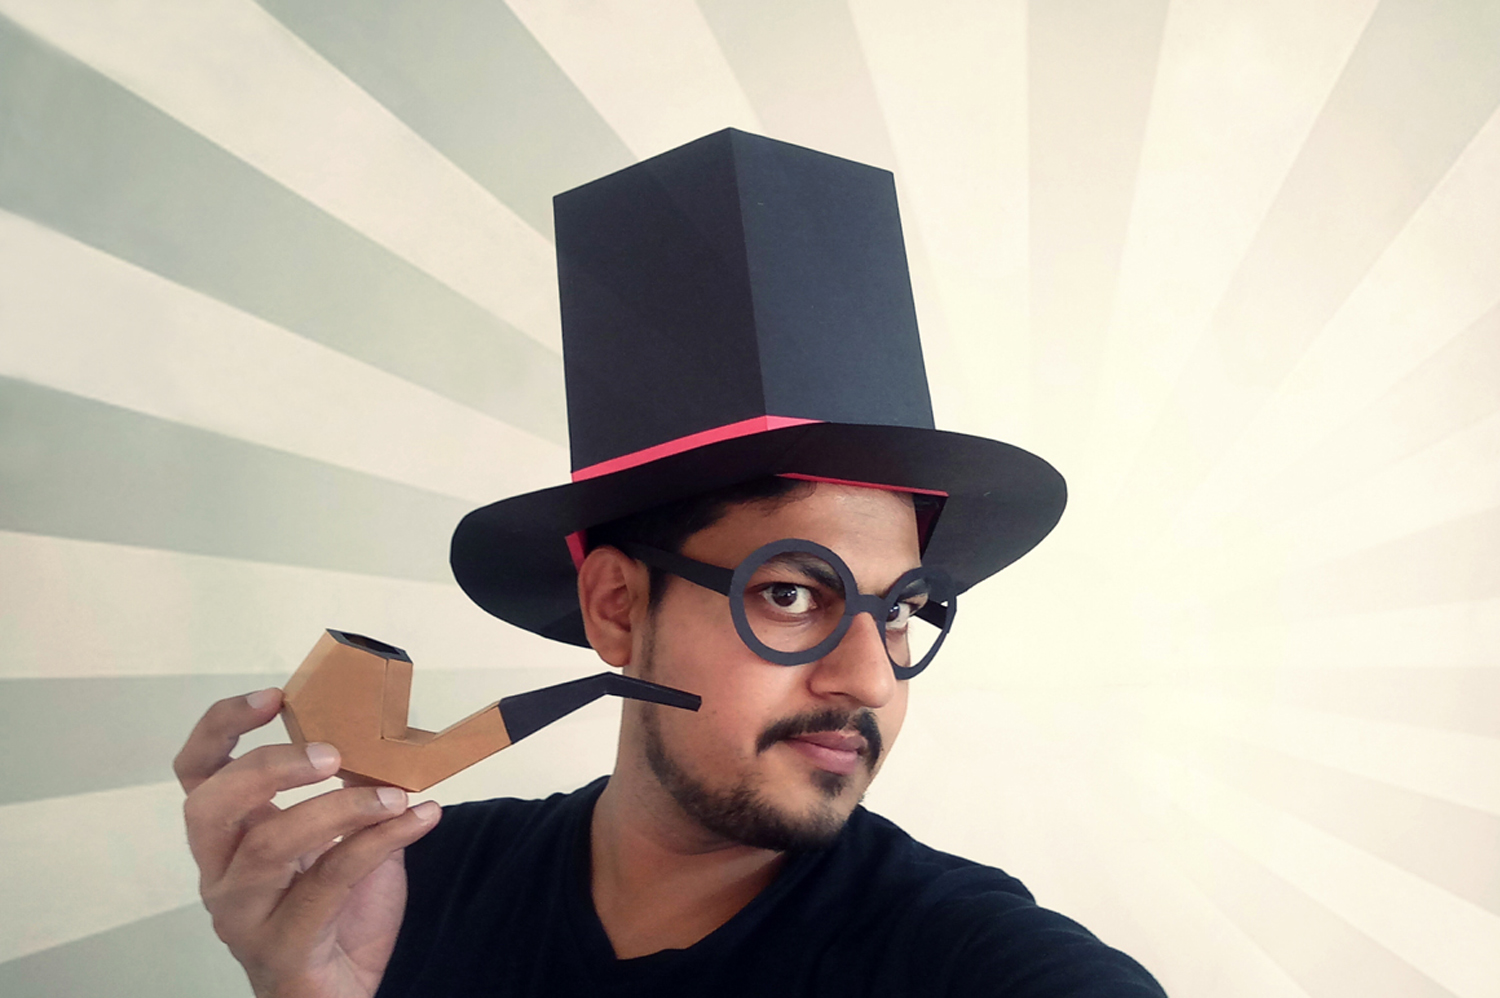 DIY Hat with Cigar - 3d papercraft example image 1